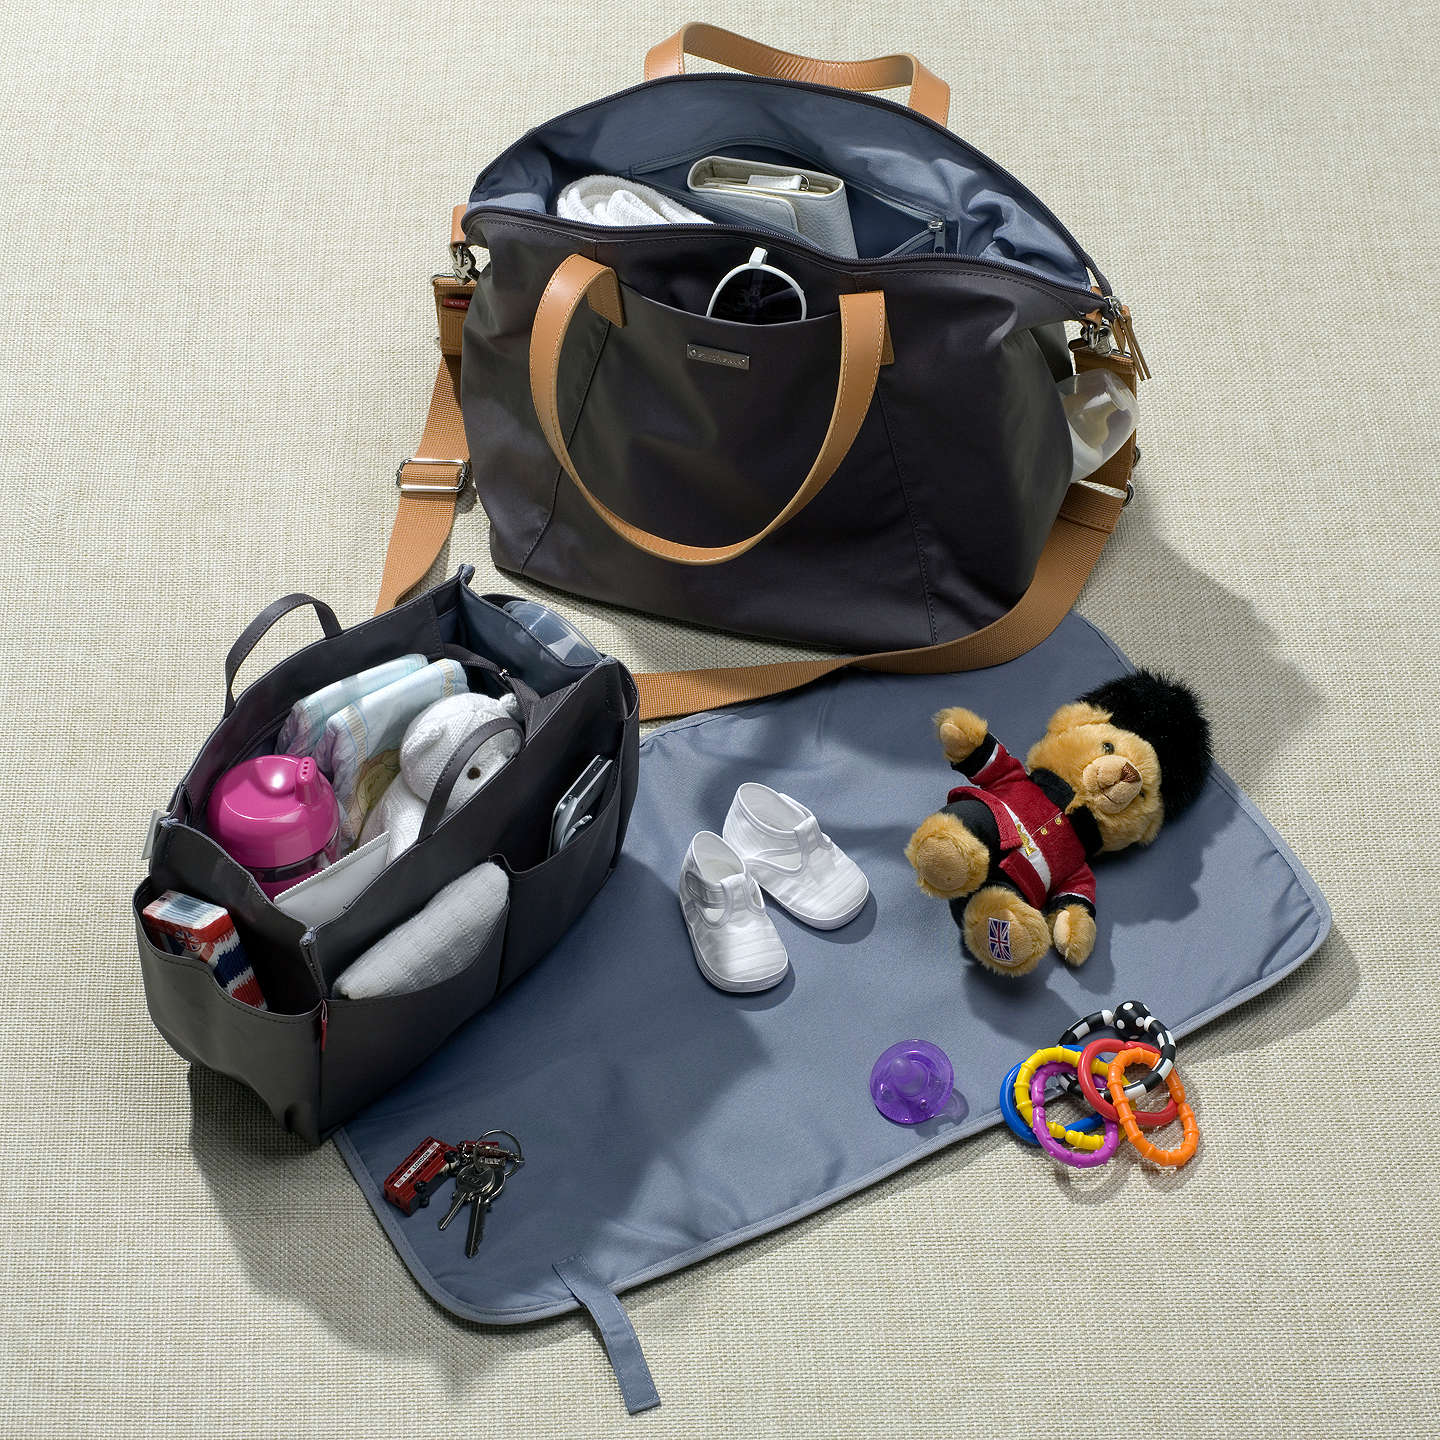 BuyStorksak Noa Changing Bag, Chestnut Grey Online at johnlewis.com